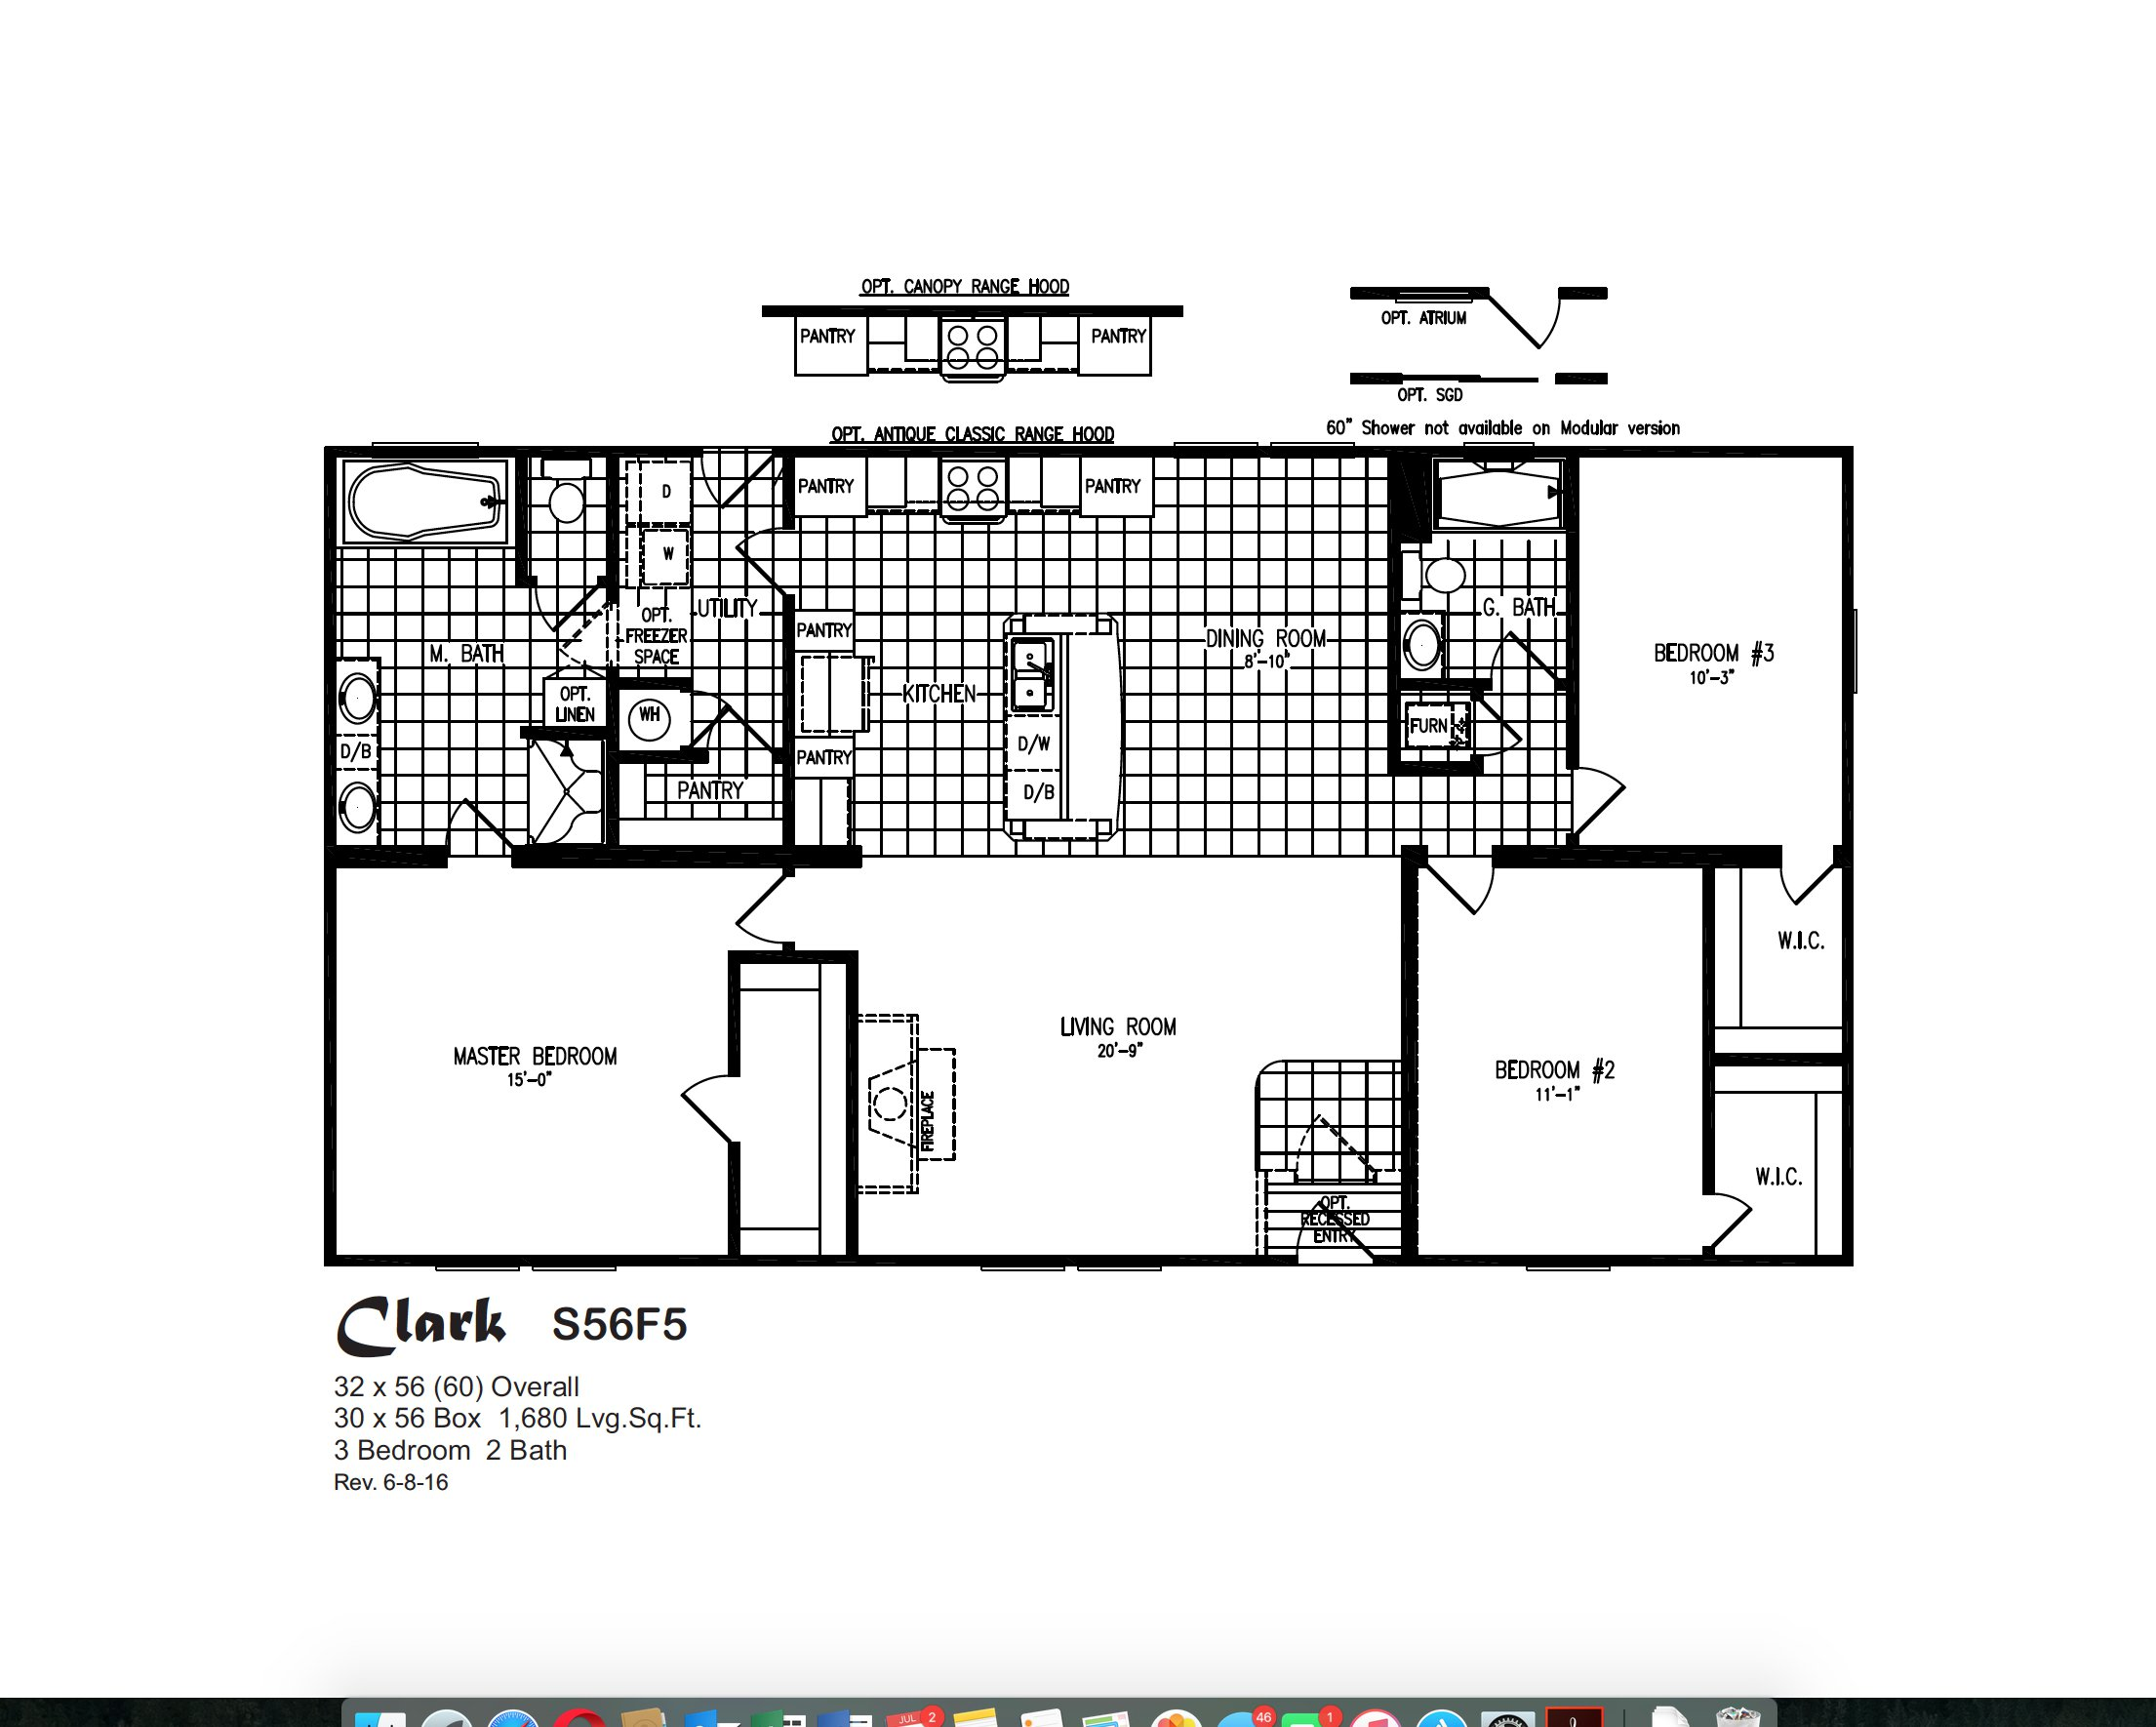 Discover Modular Homes In Denton Tx Manufactured Home And Wiring Diagram Prime Series Clark S56f5